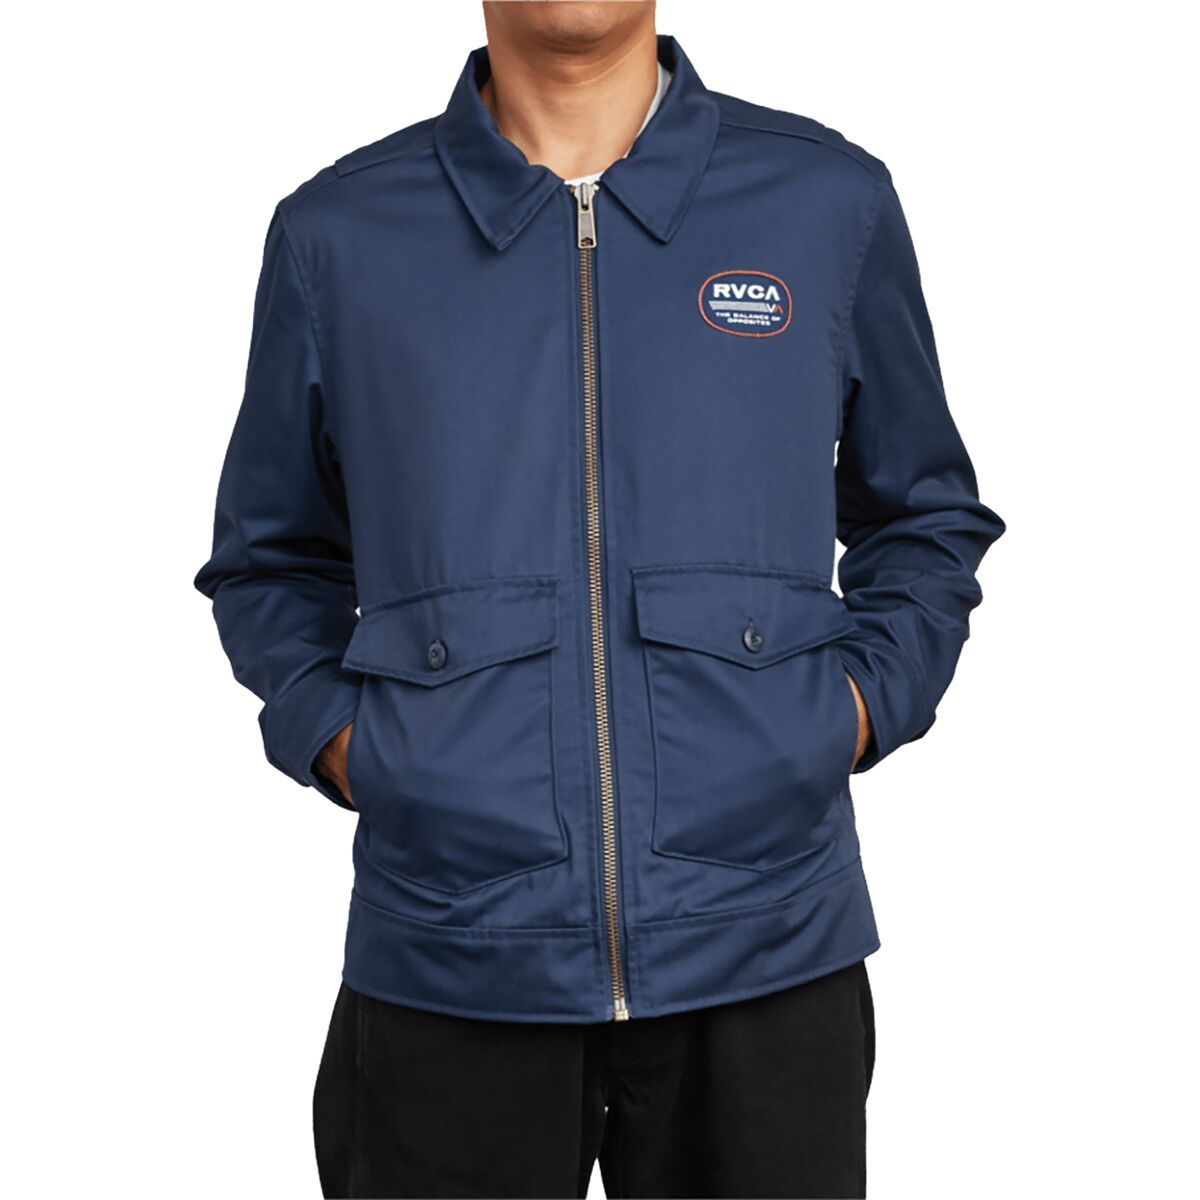 Service Jacket Men S In 2021 Mens Jackets Jackets Mens Outfits [ 1200 x 1200 Pixel ]